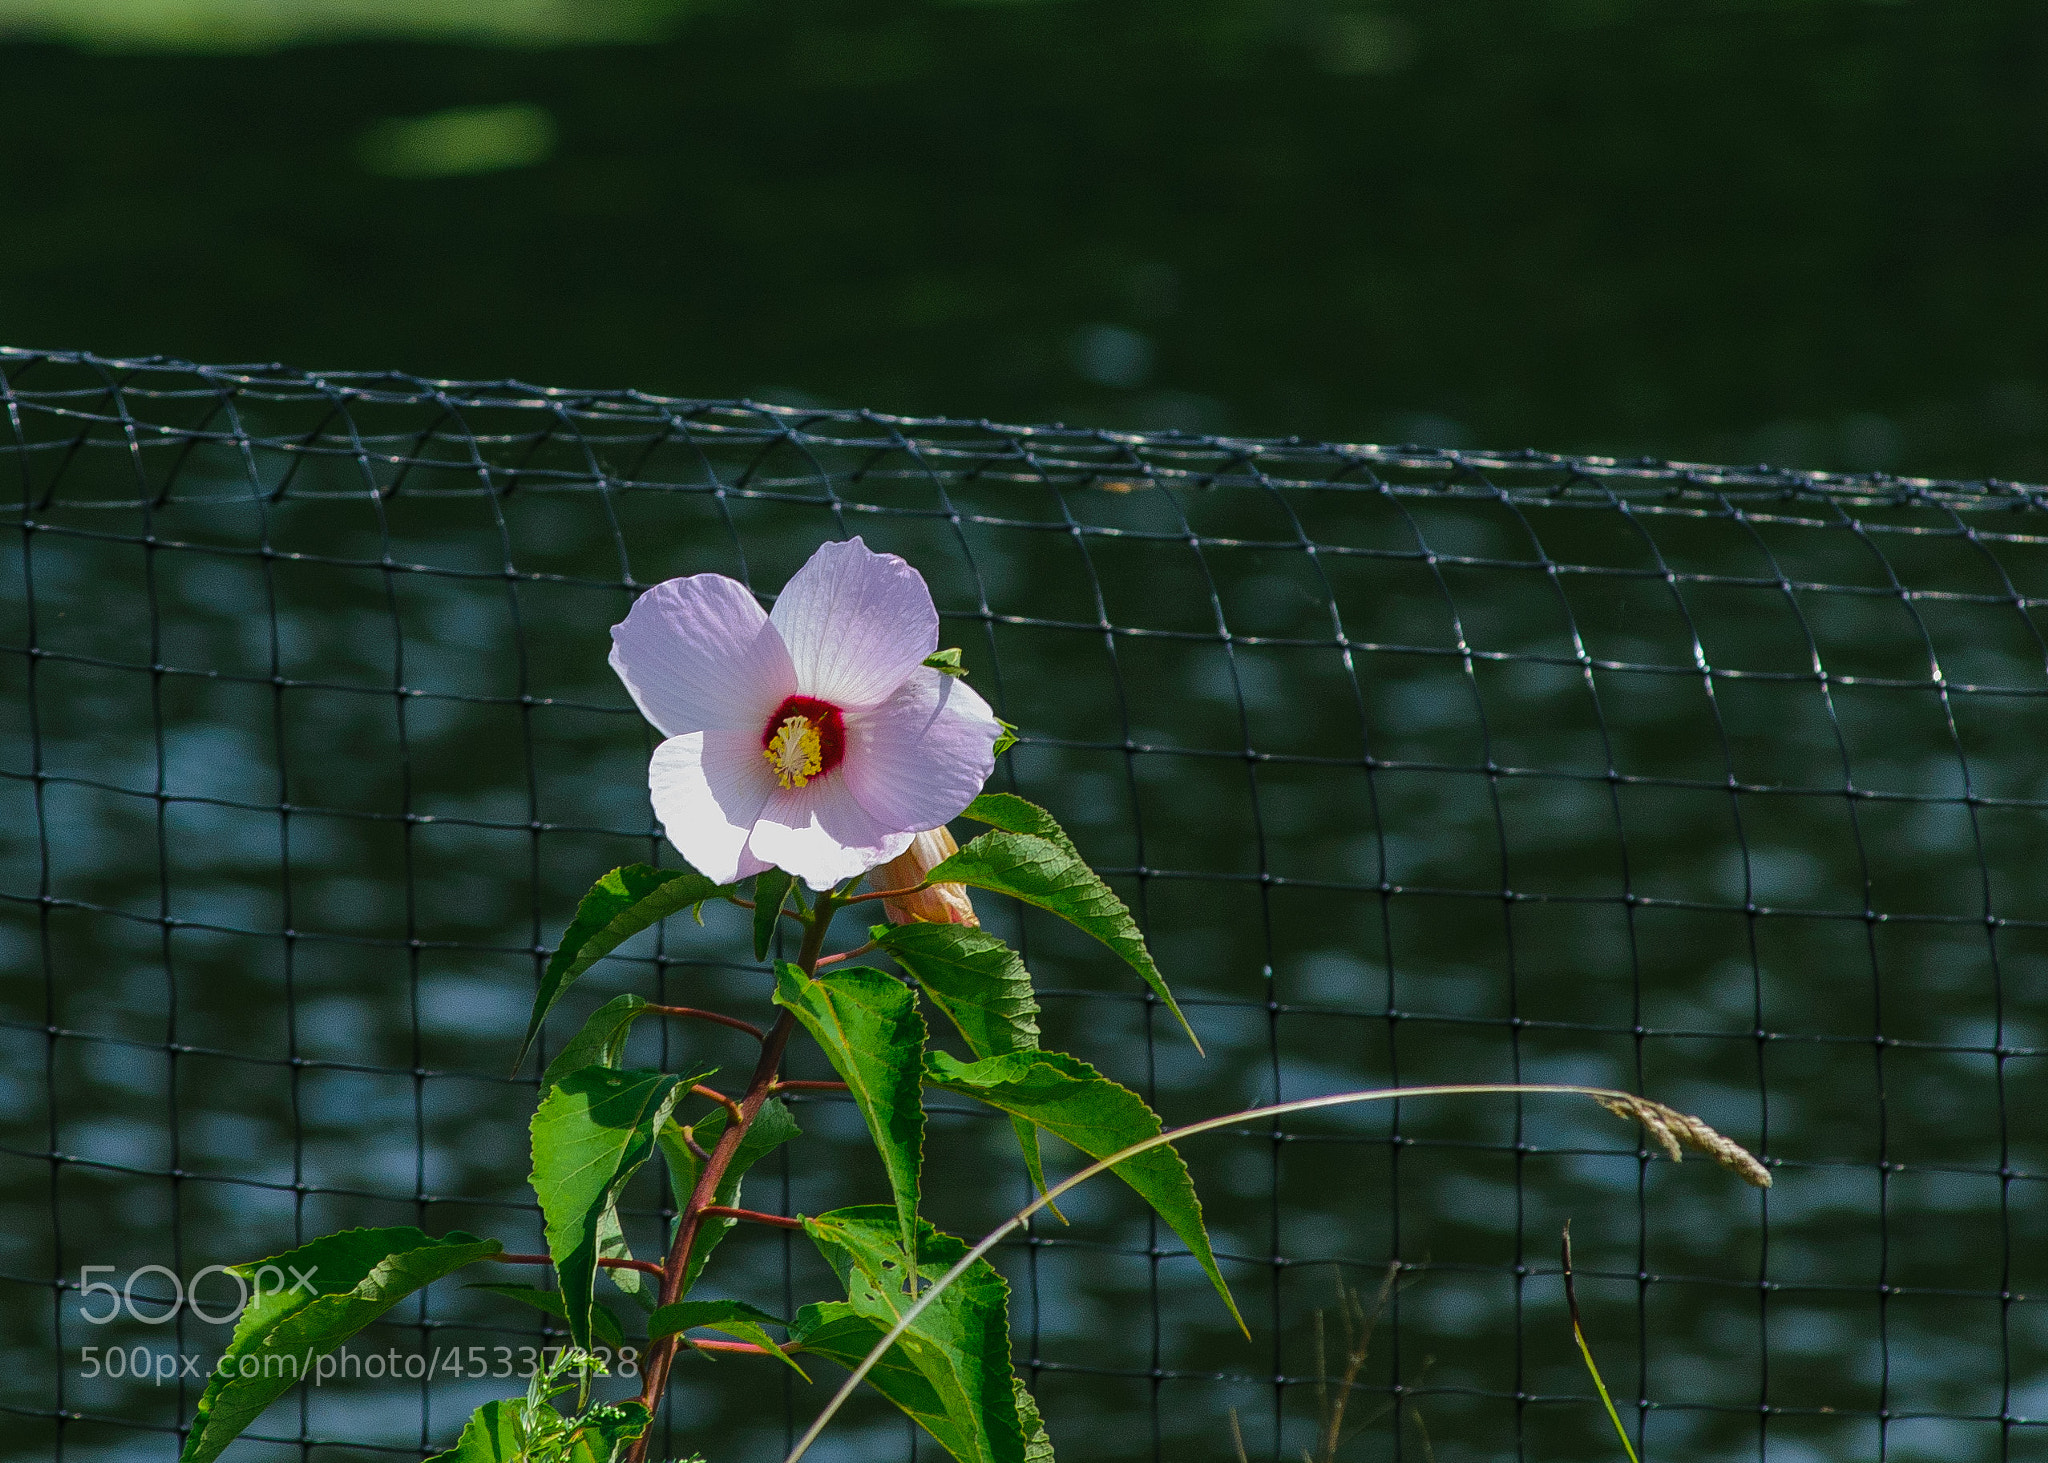 Photograph Can't Fence In Beauty by Christopher Ryan on 500px